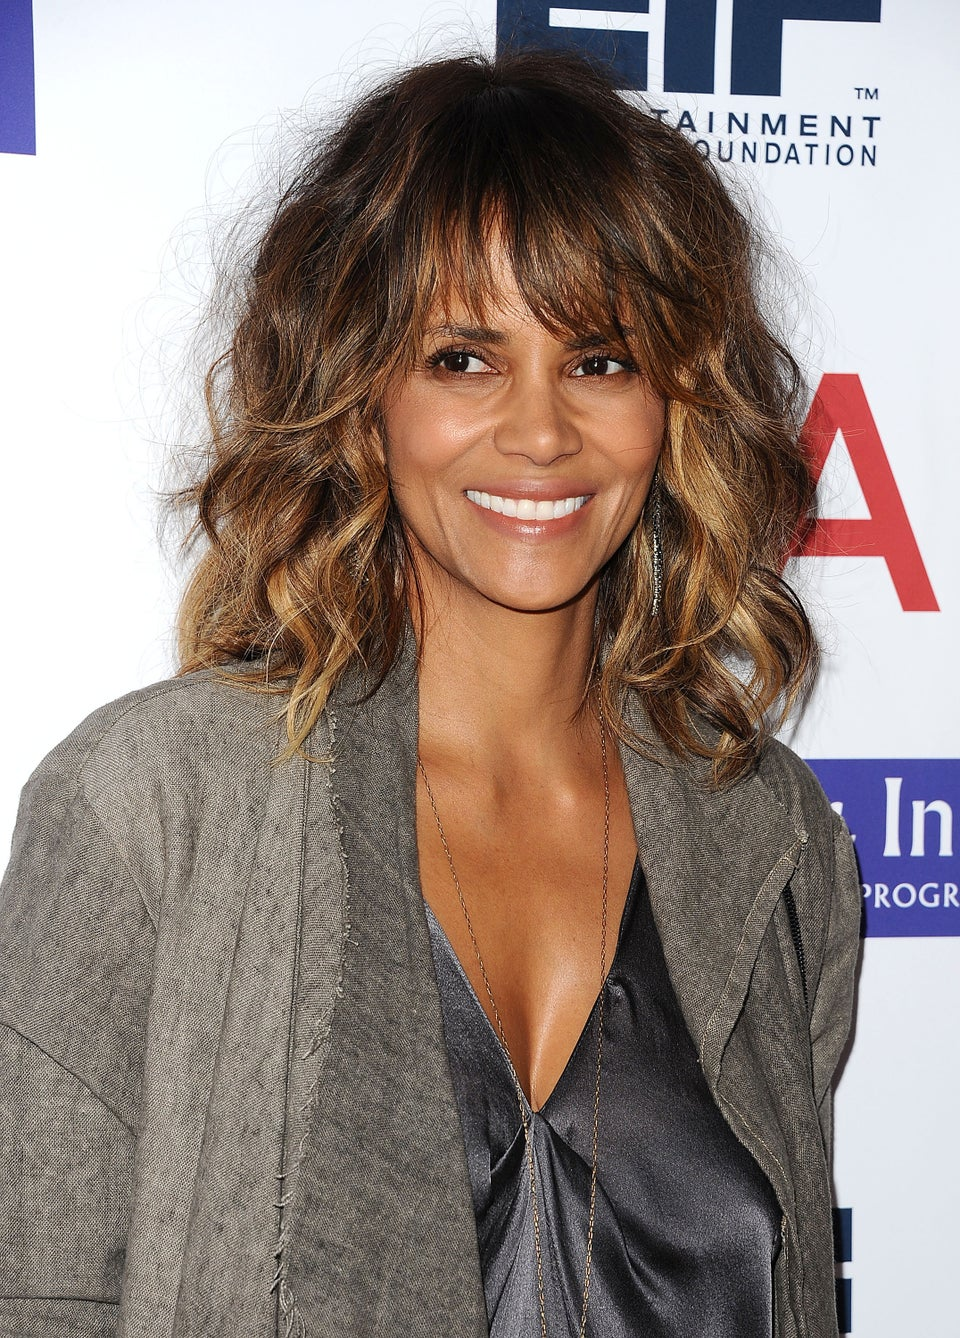 Halle Berry Discusses Domestic Violence in Wake of Divorce Filing